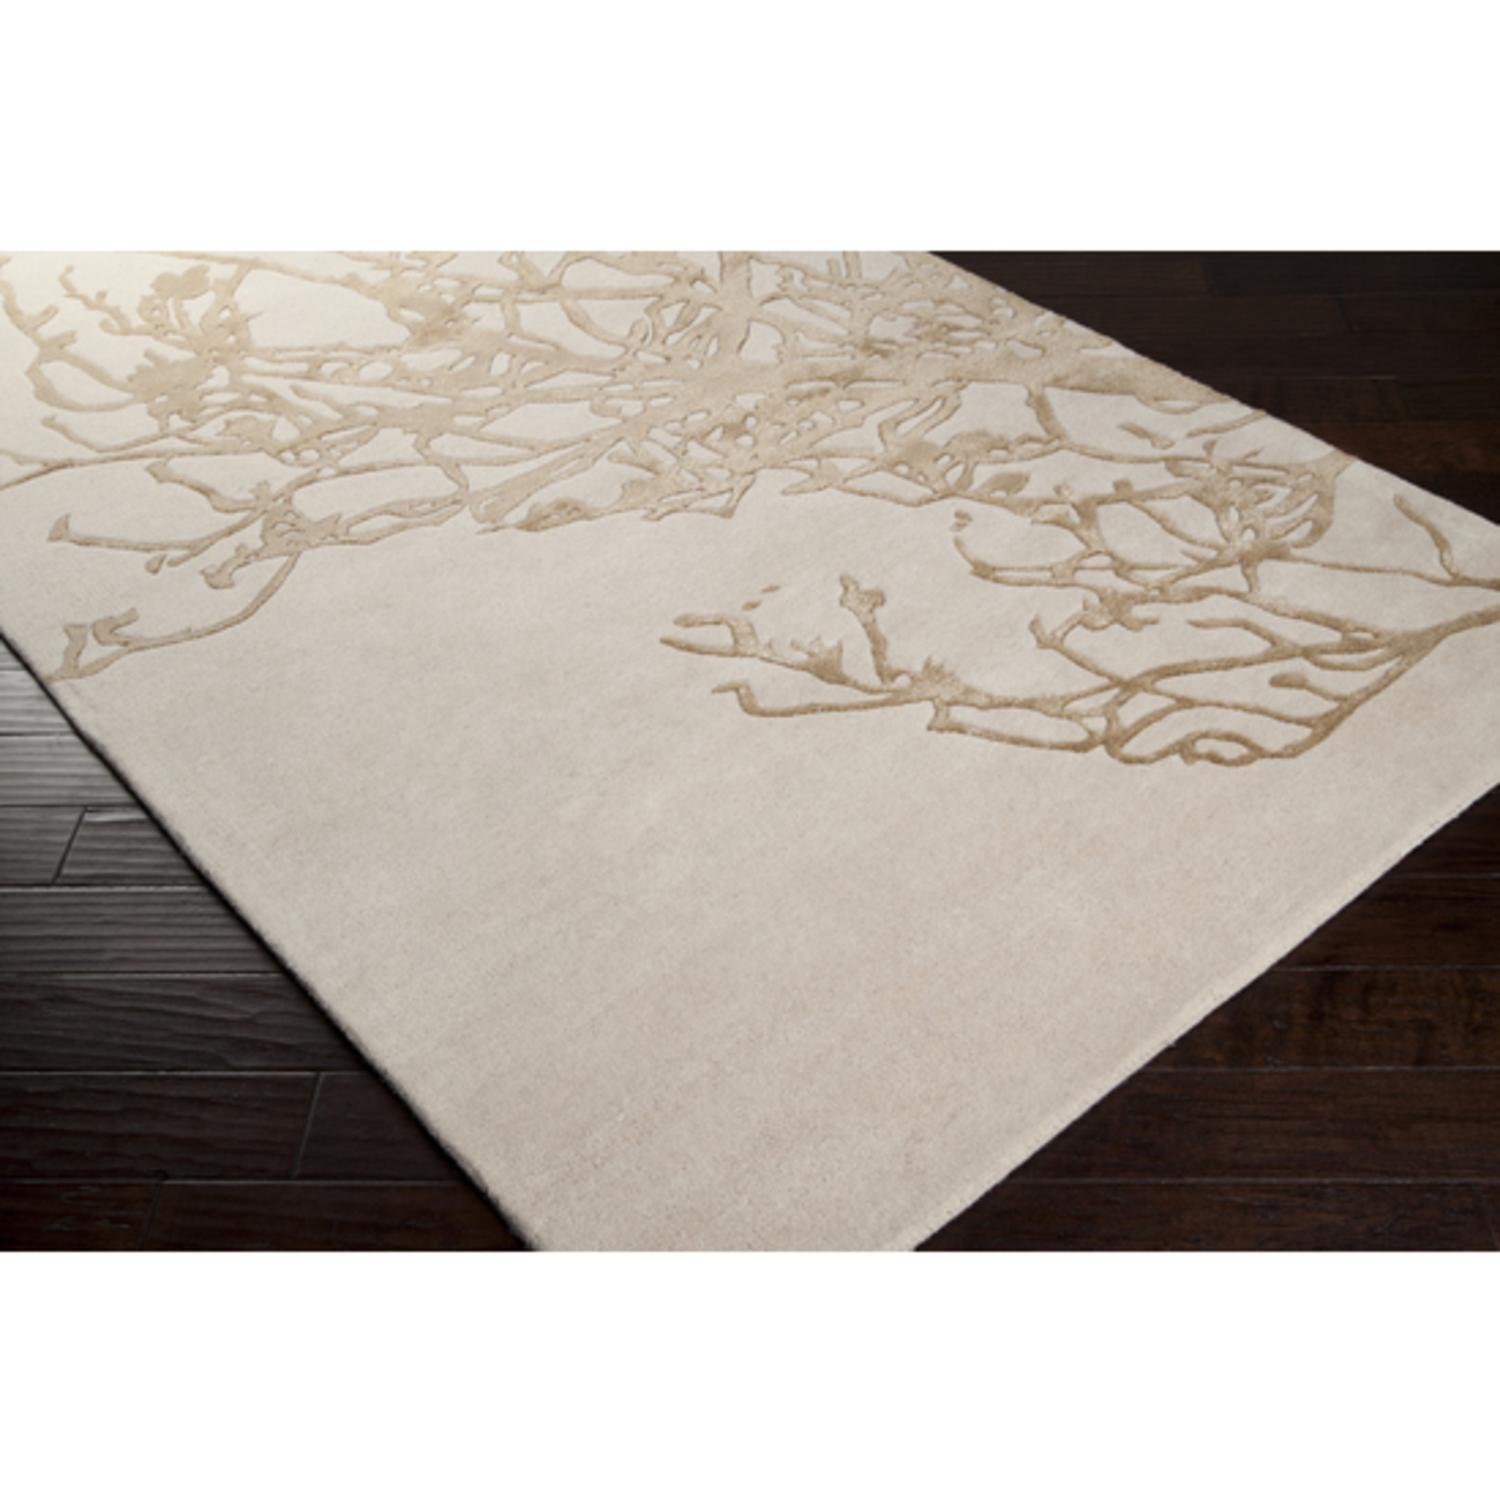 8' x 11' Salsola Tan and Peach Cream Wool Area Throw Rug